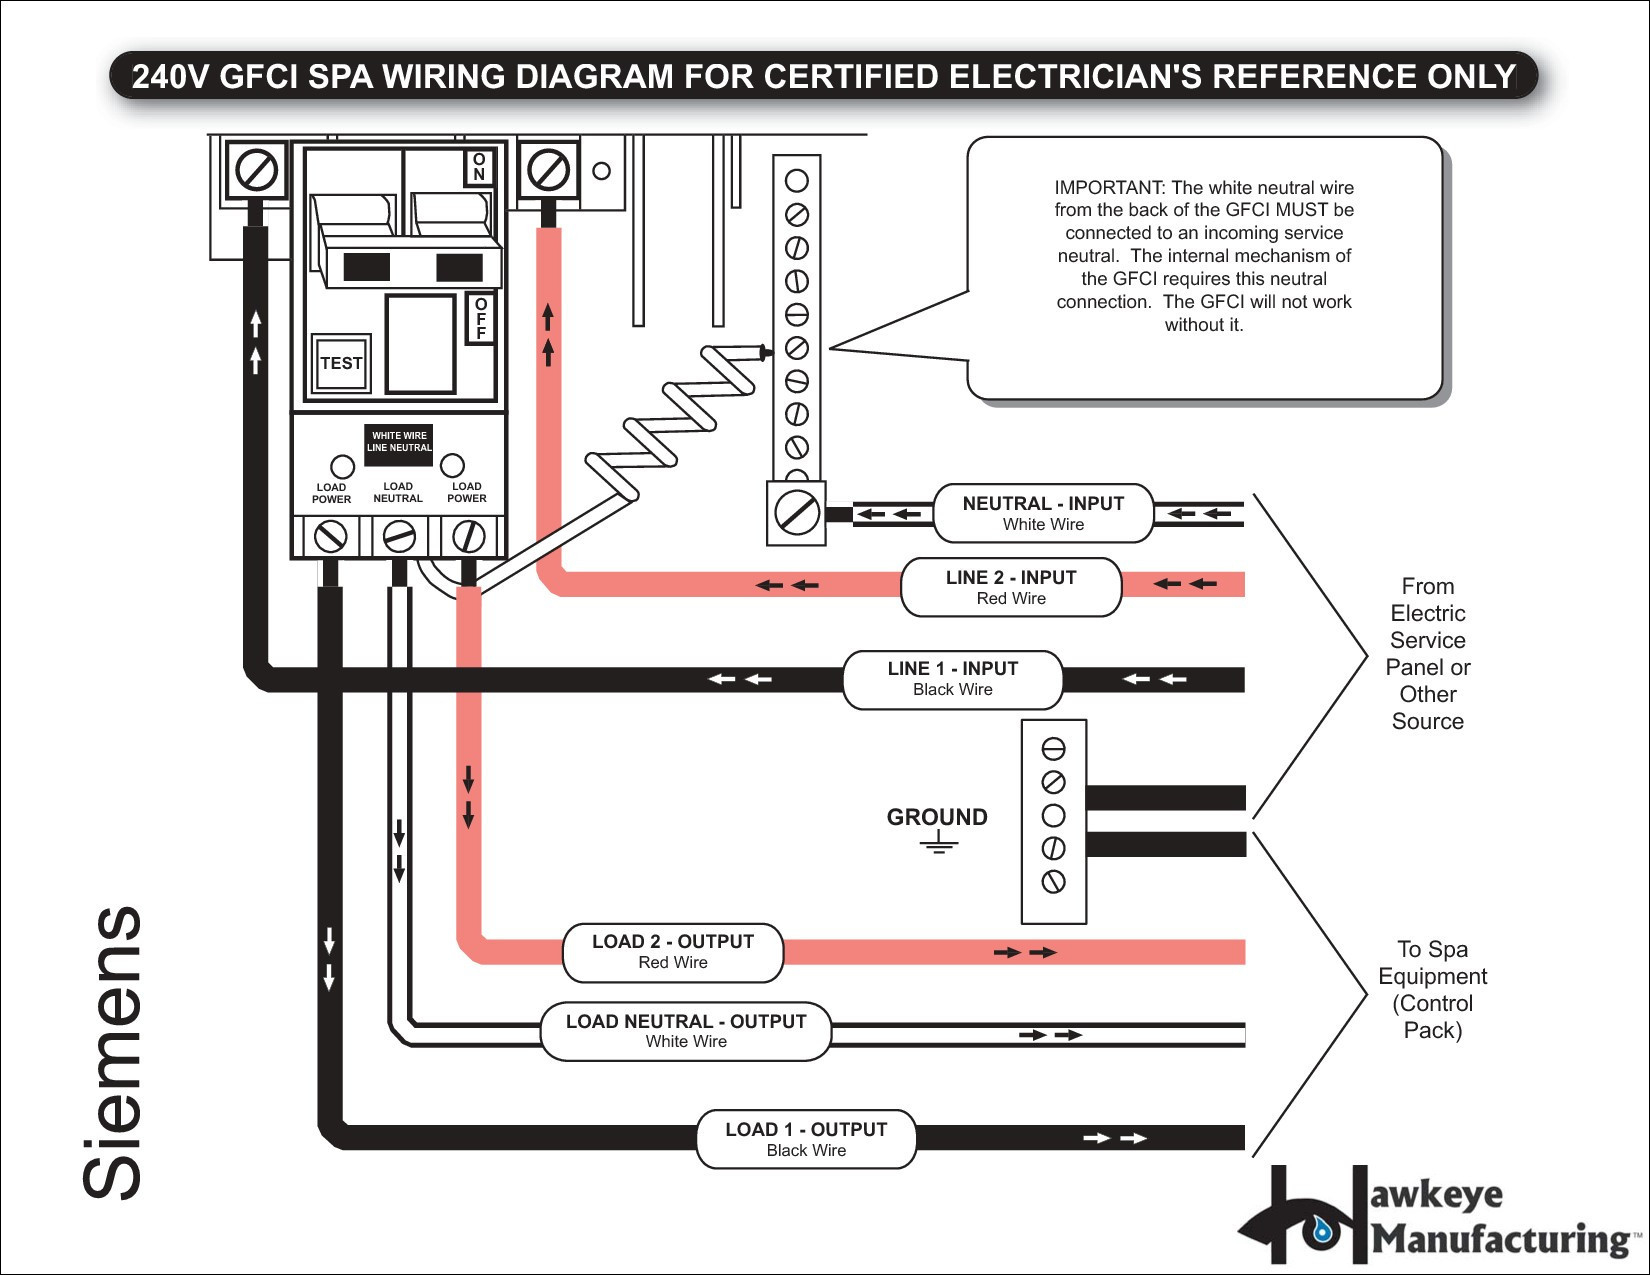 Gfi Breaker Wiring - Wiring Diagrams Terms on badlands winch instruction manual, badlands winch forum, badland winches wireless remote diagram, badland winch wire diagram, badlands 9000 lb winch, badlands winch troubleshooting, badlands winch remote control, badlands winch solenoid, badlands winch specifications, badlands winch circuit breaker, badlands winch parts, 277 volt light wiring diagram, badland winch wireless remote box diagram, badlands winch plug, badland remote wiring diagram, badlands winch problems, badlands winch accessories, chicago winch parts diagram,